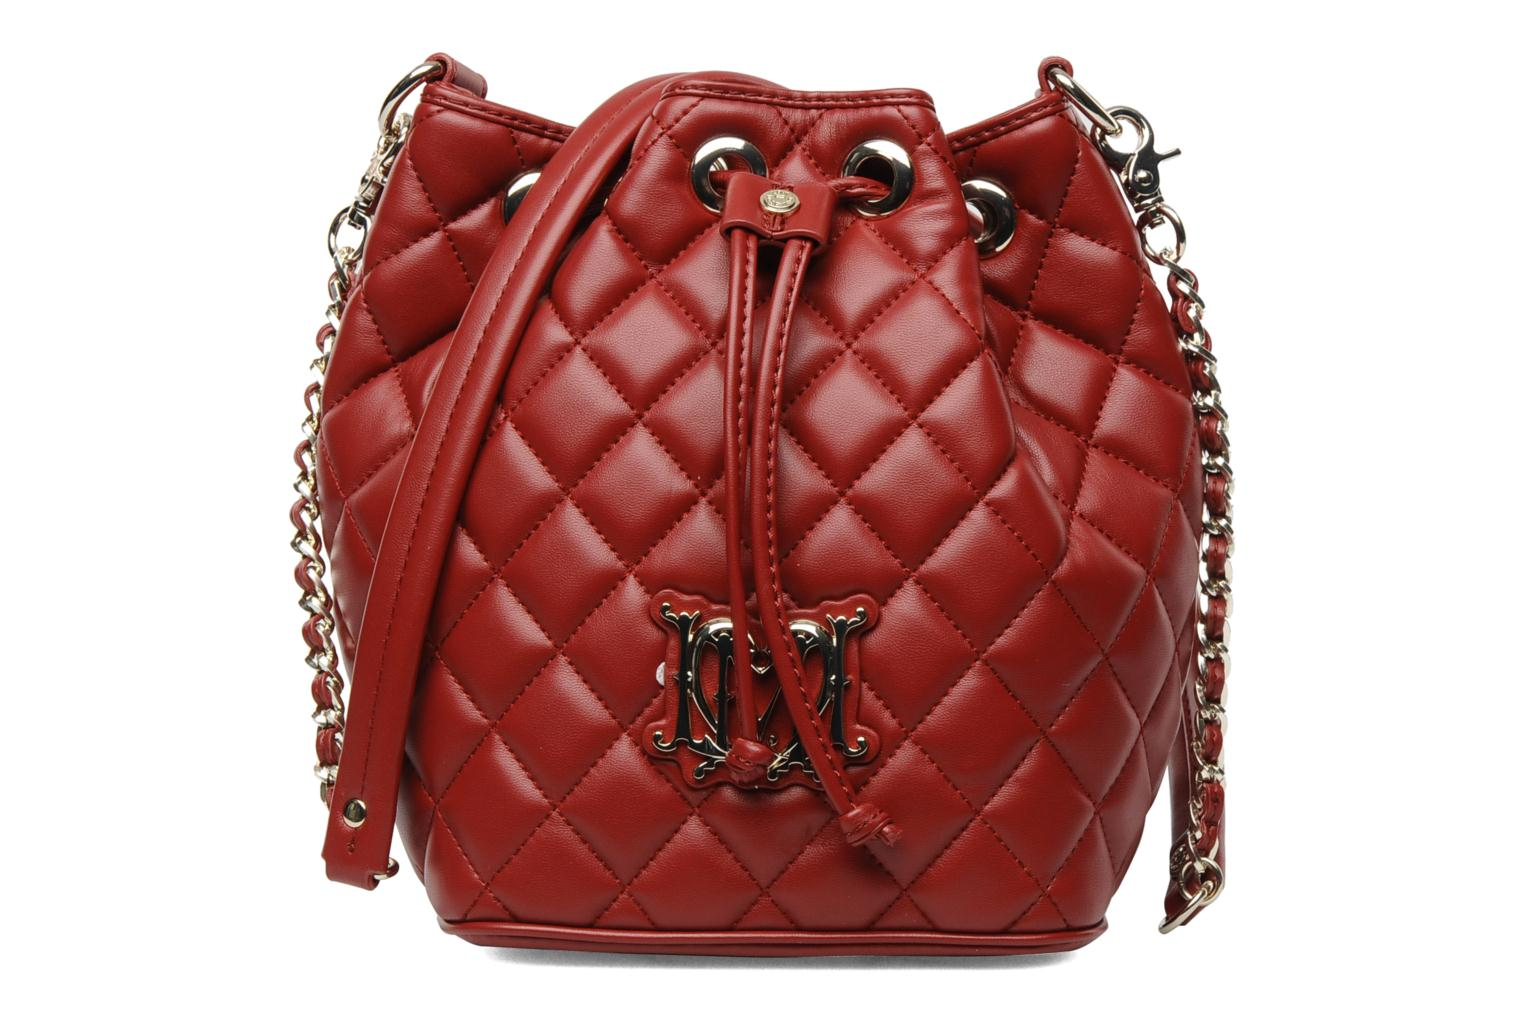 Sac bourse Love Moschino JEL9th0ytN